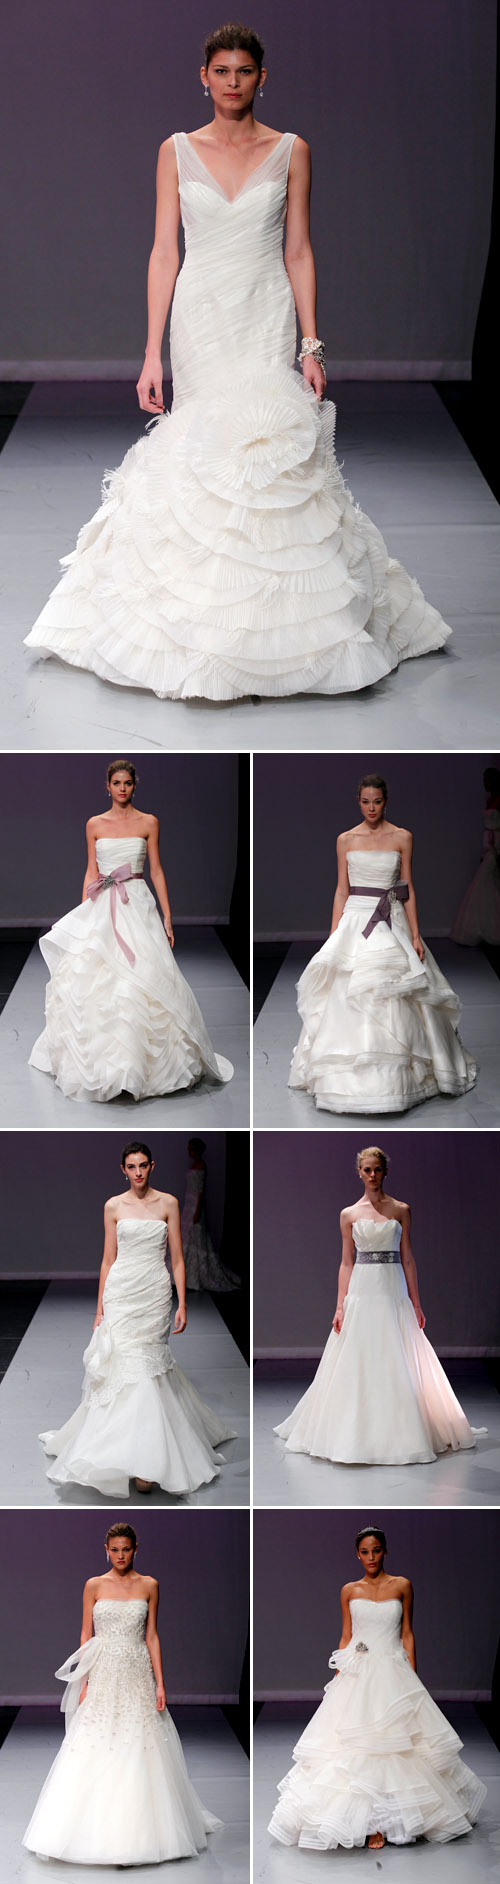 glamorous wedding dresses from Rivini Fall/Winter 2012 bridal market runway show